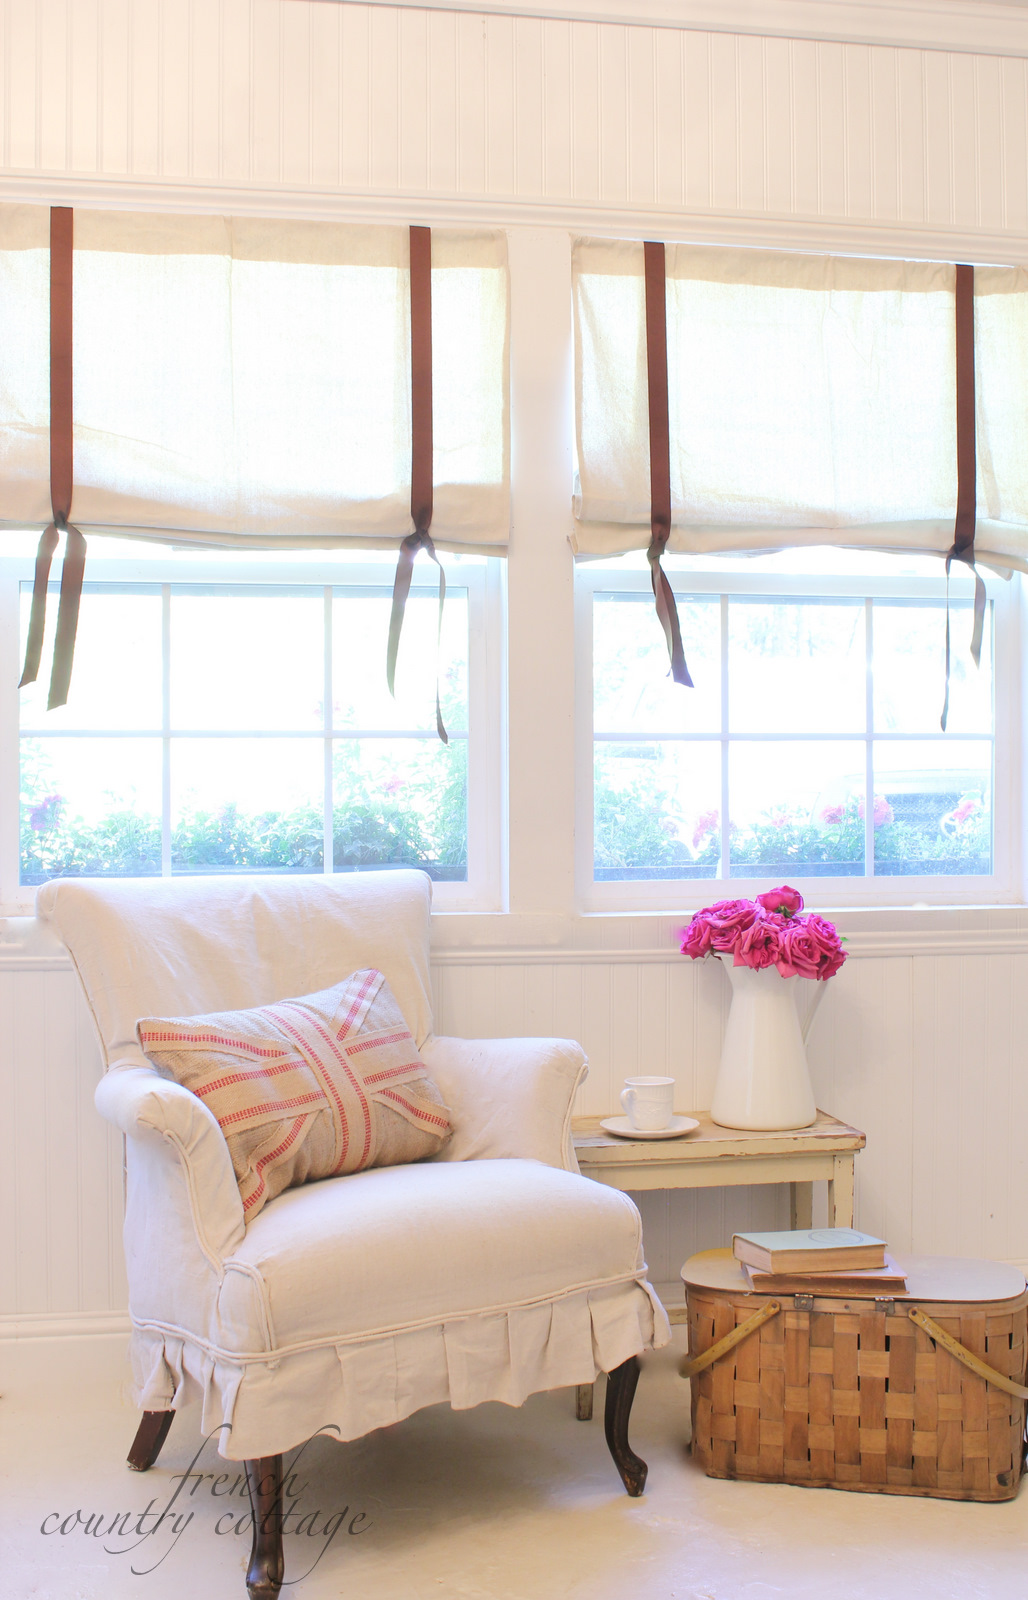 Diy drop cloth shades tutorial french country cottage solutioingenieria Choice Image